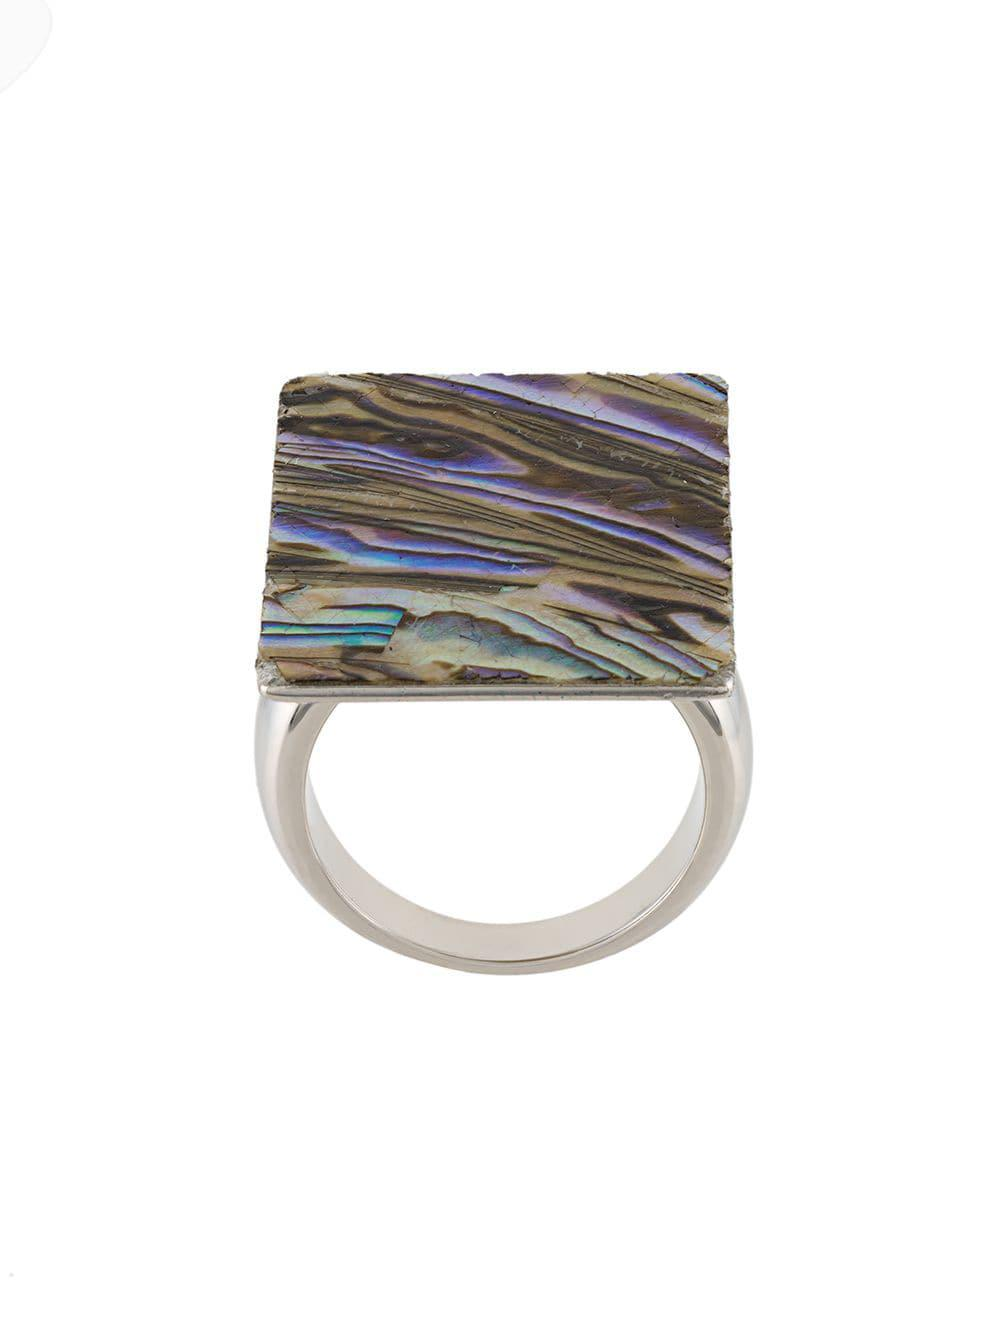 Christopher Kane Mother Of Pearl Ring in Metallic